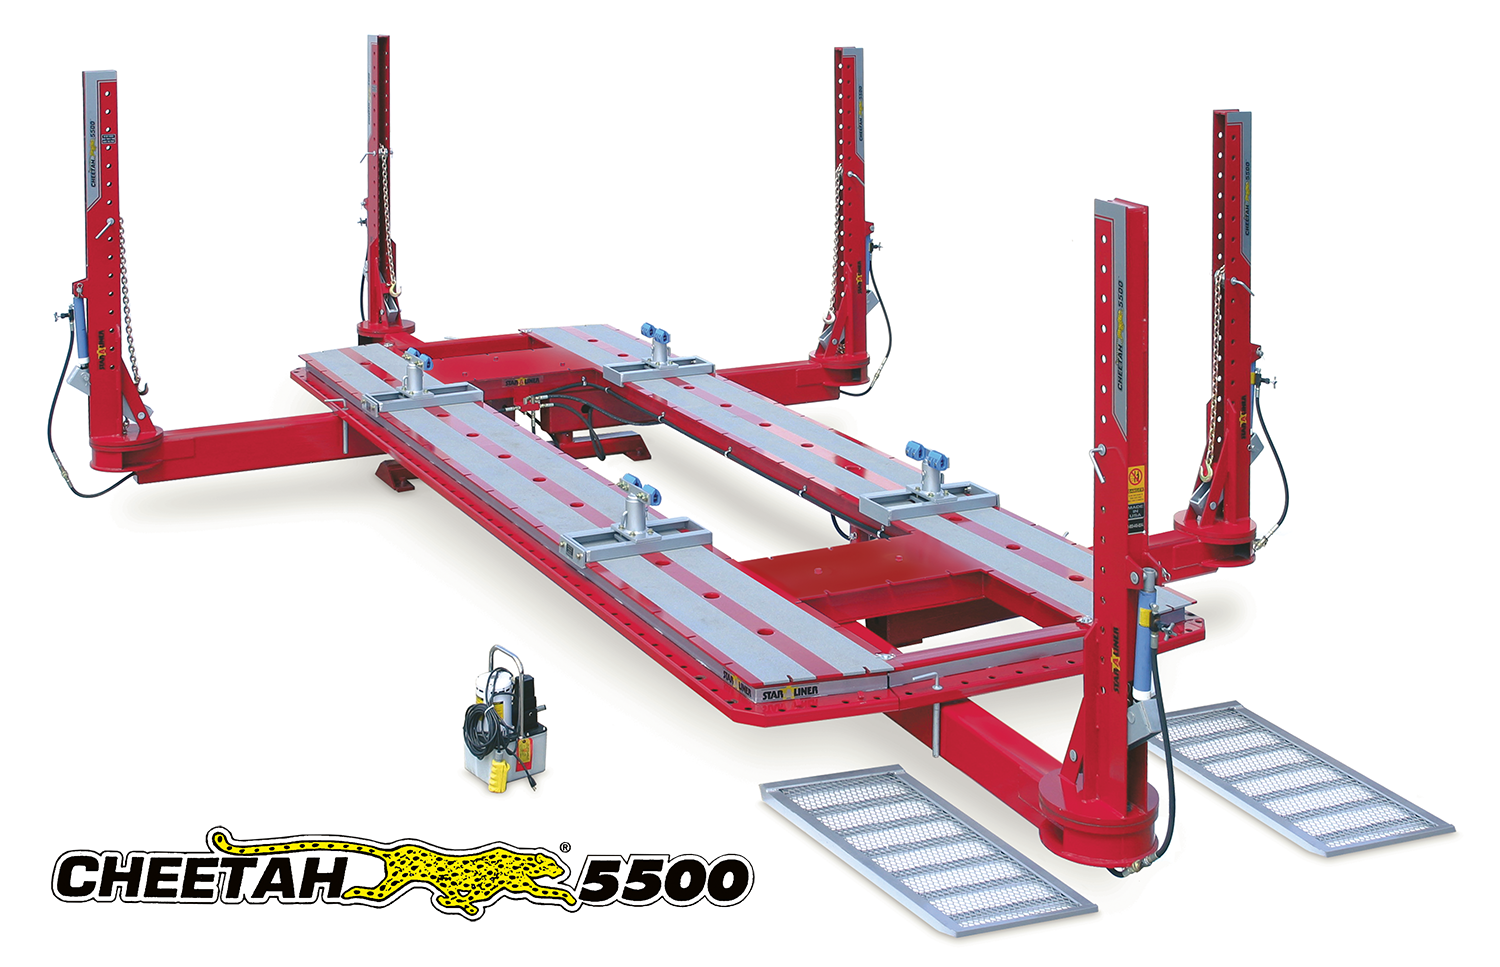 Star-a-Liner Cheetah 5500 20\' Five Tower Frame Machine W/ AIR-HYD ...